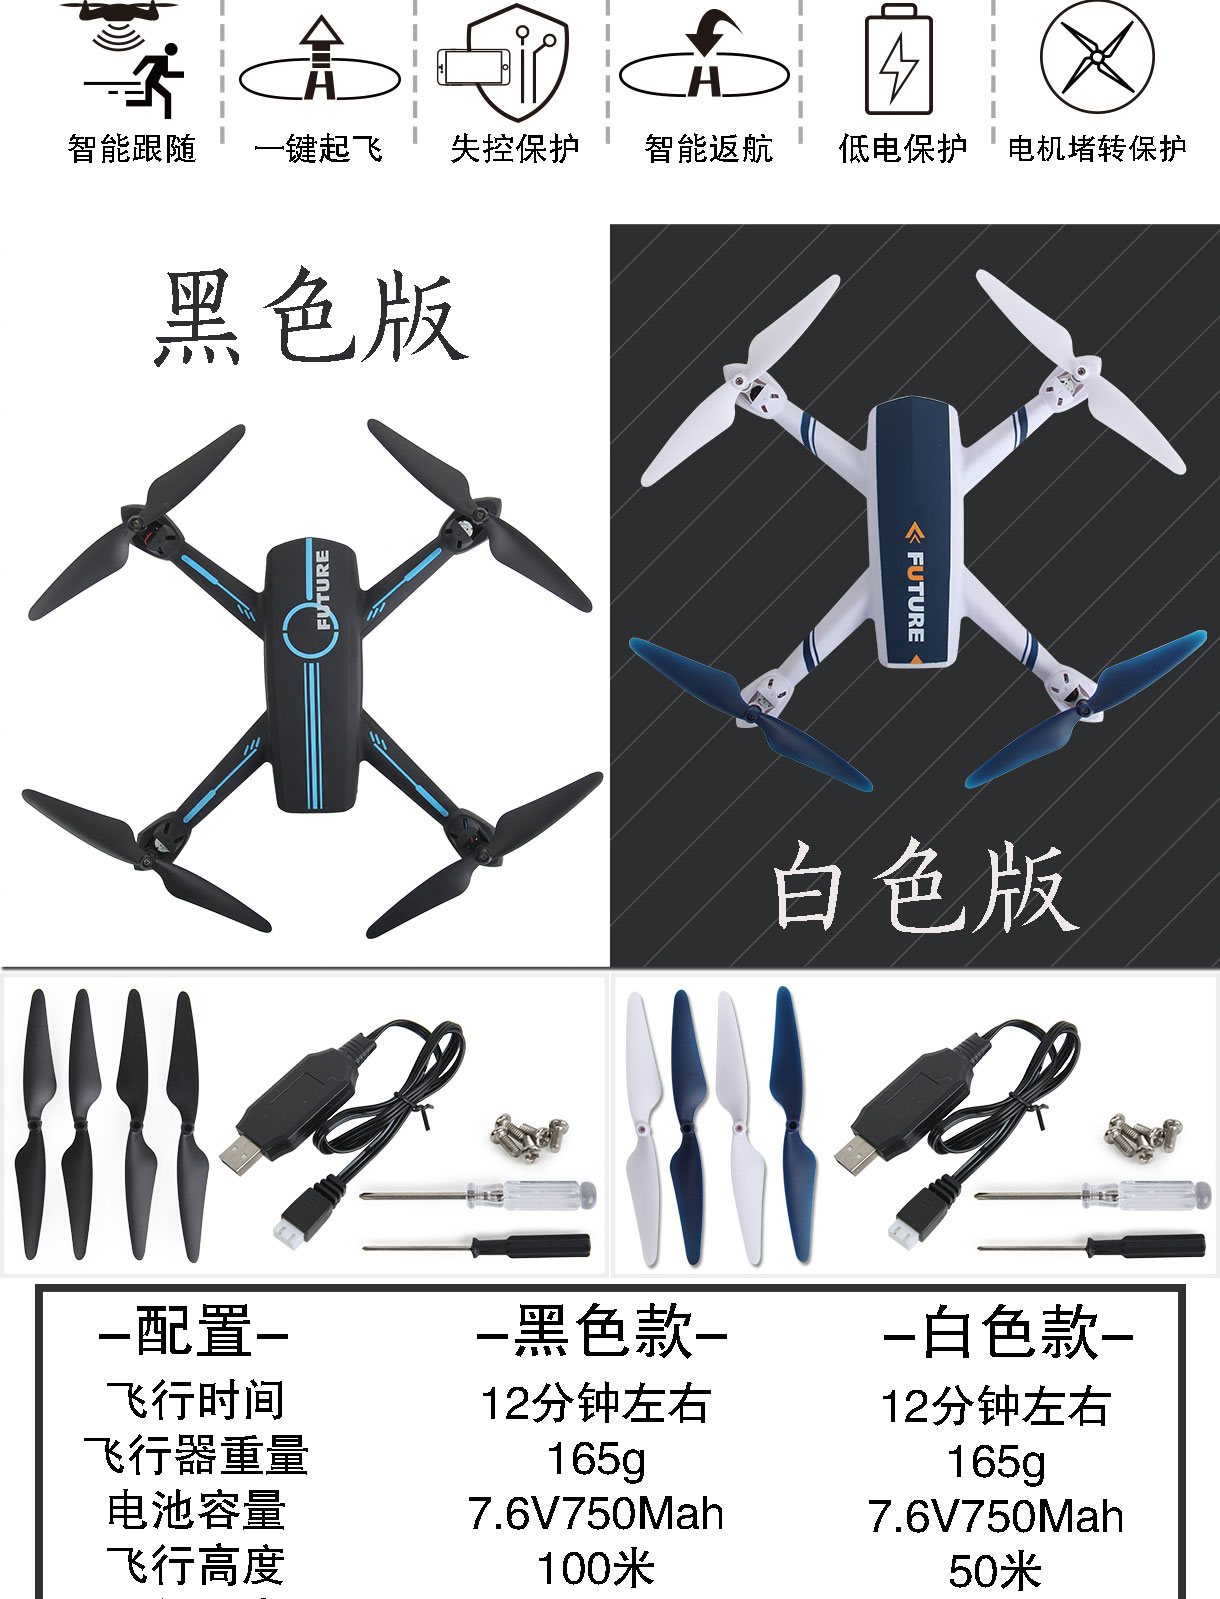 WIFI FPV RC Drone GPS Mining Point Drone 528 RC Quadcopter Full HD 720P Camera one key take off/landing/stop Stable Flight - 5